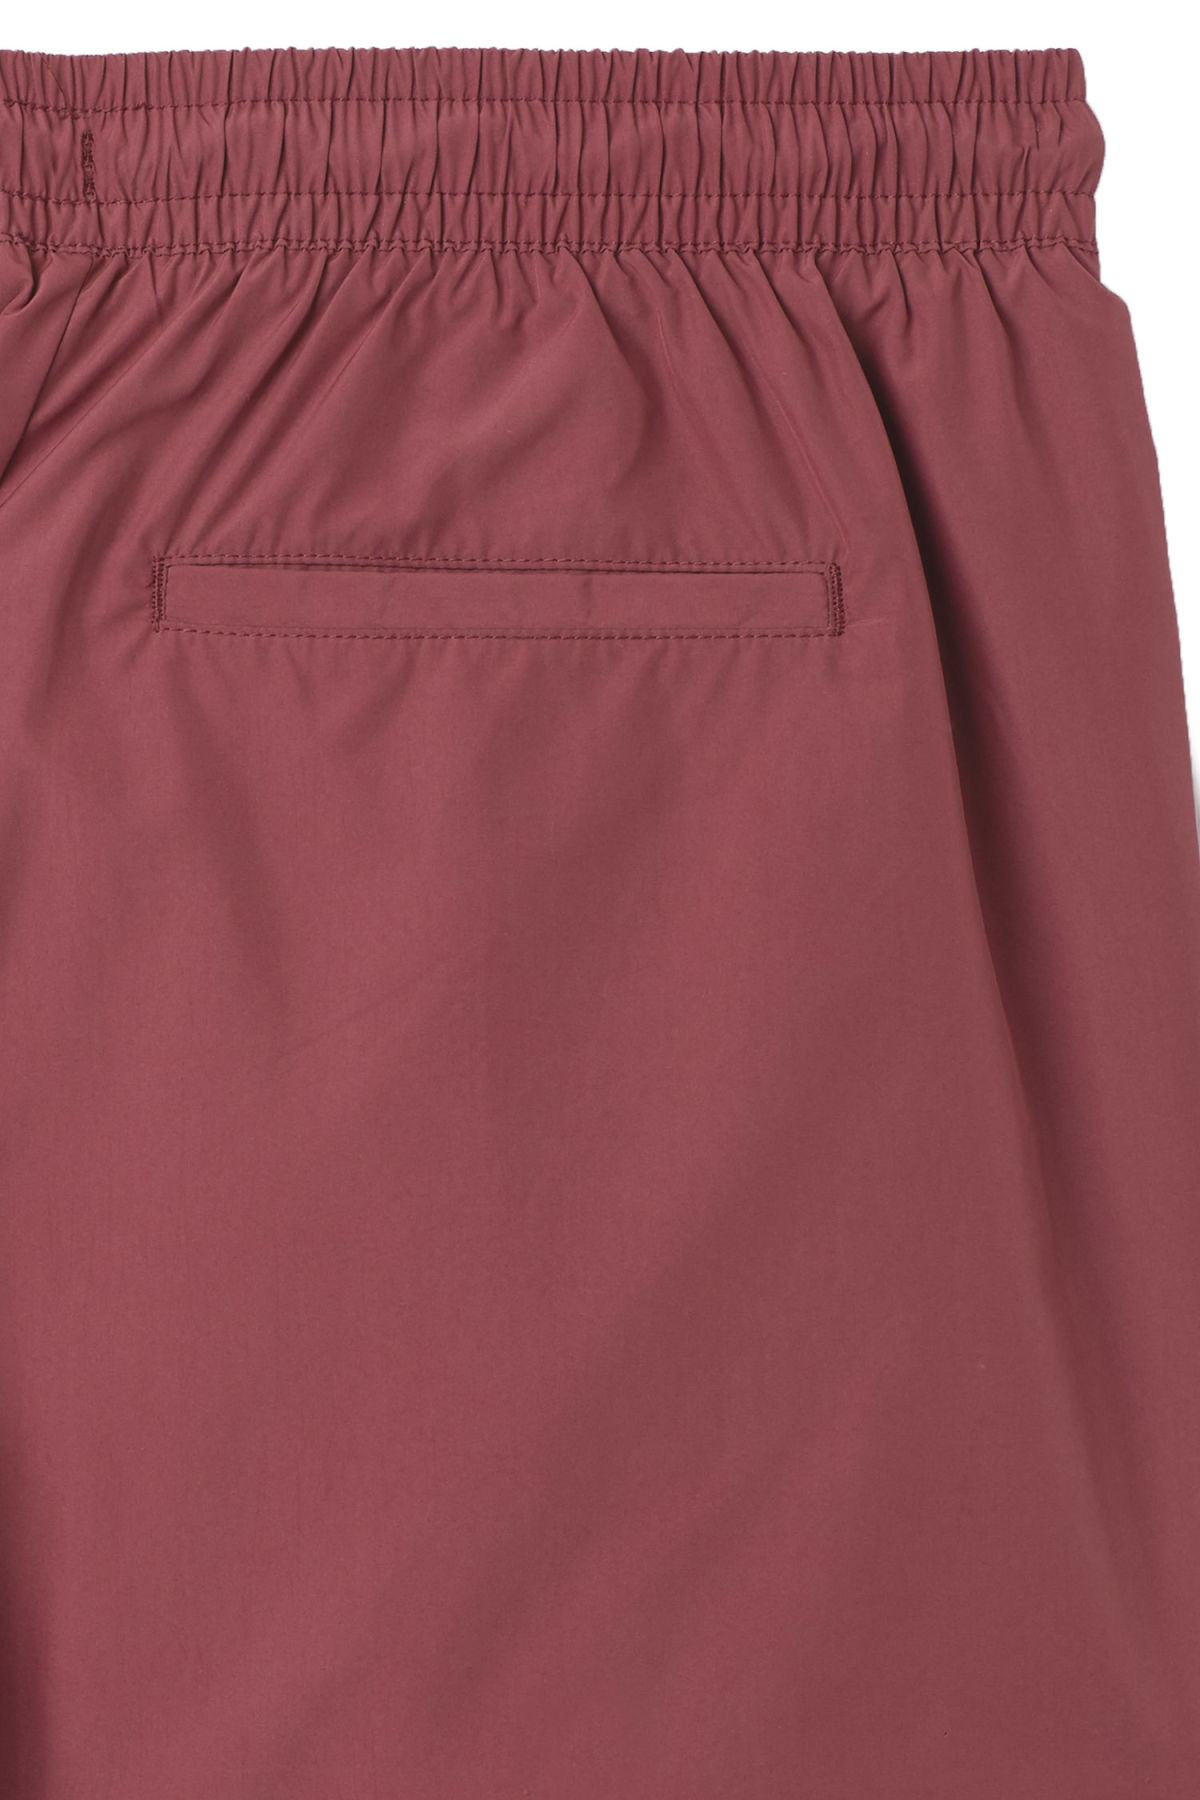 Detailed image of Weekday tan swim shorts in red